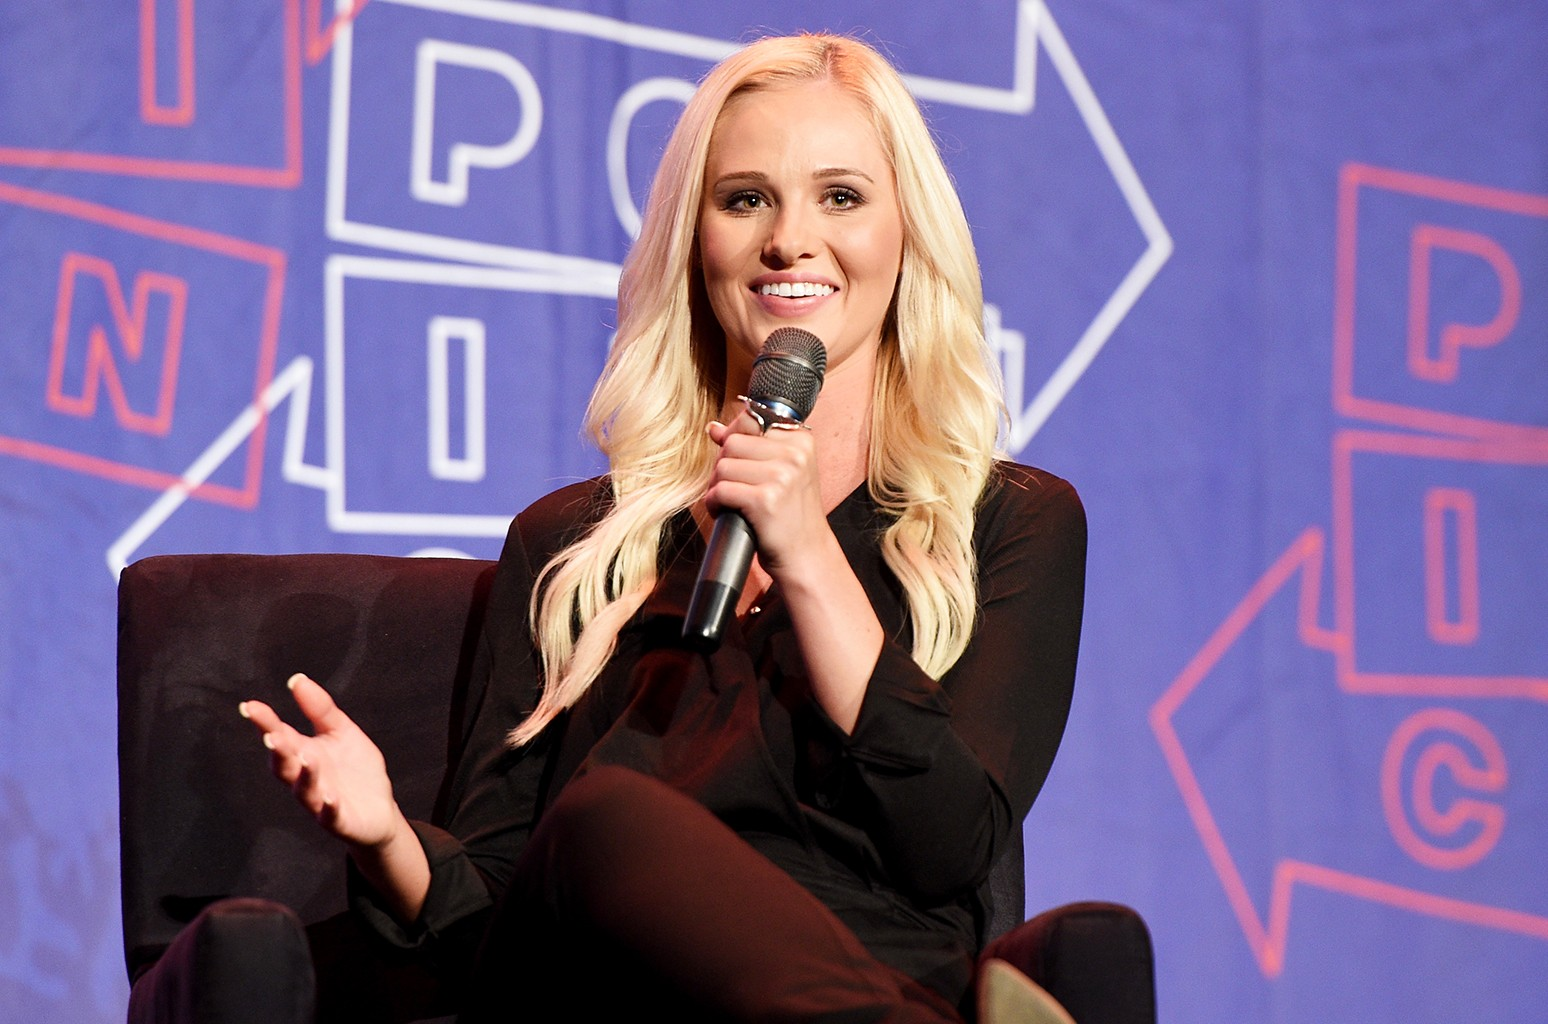 From Jay Z To Cardi B Tomi Lahren S Ongoing Feud With Hip Hop Billboard Tomi lahren and brandon fricke got engaged in june 2019. from jay z to cardi b tomi lahren s